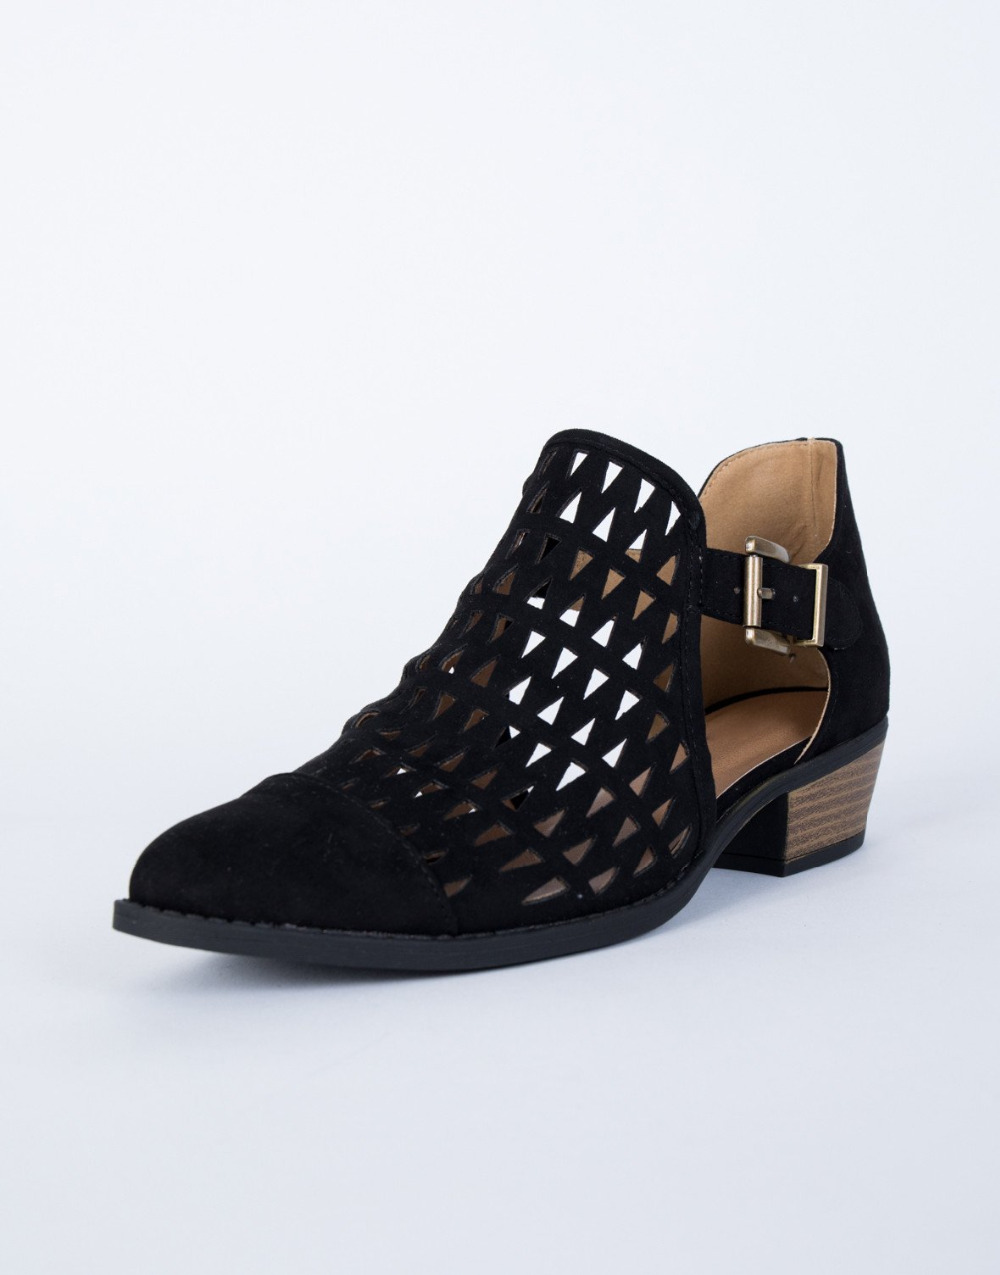 strapped-together-booties-black-2